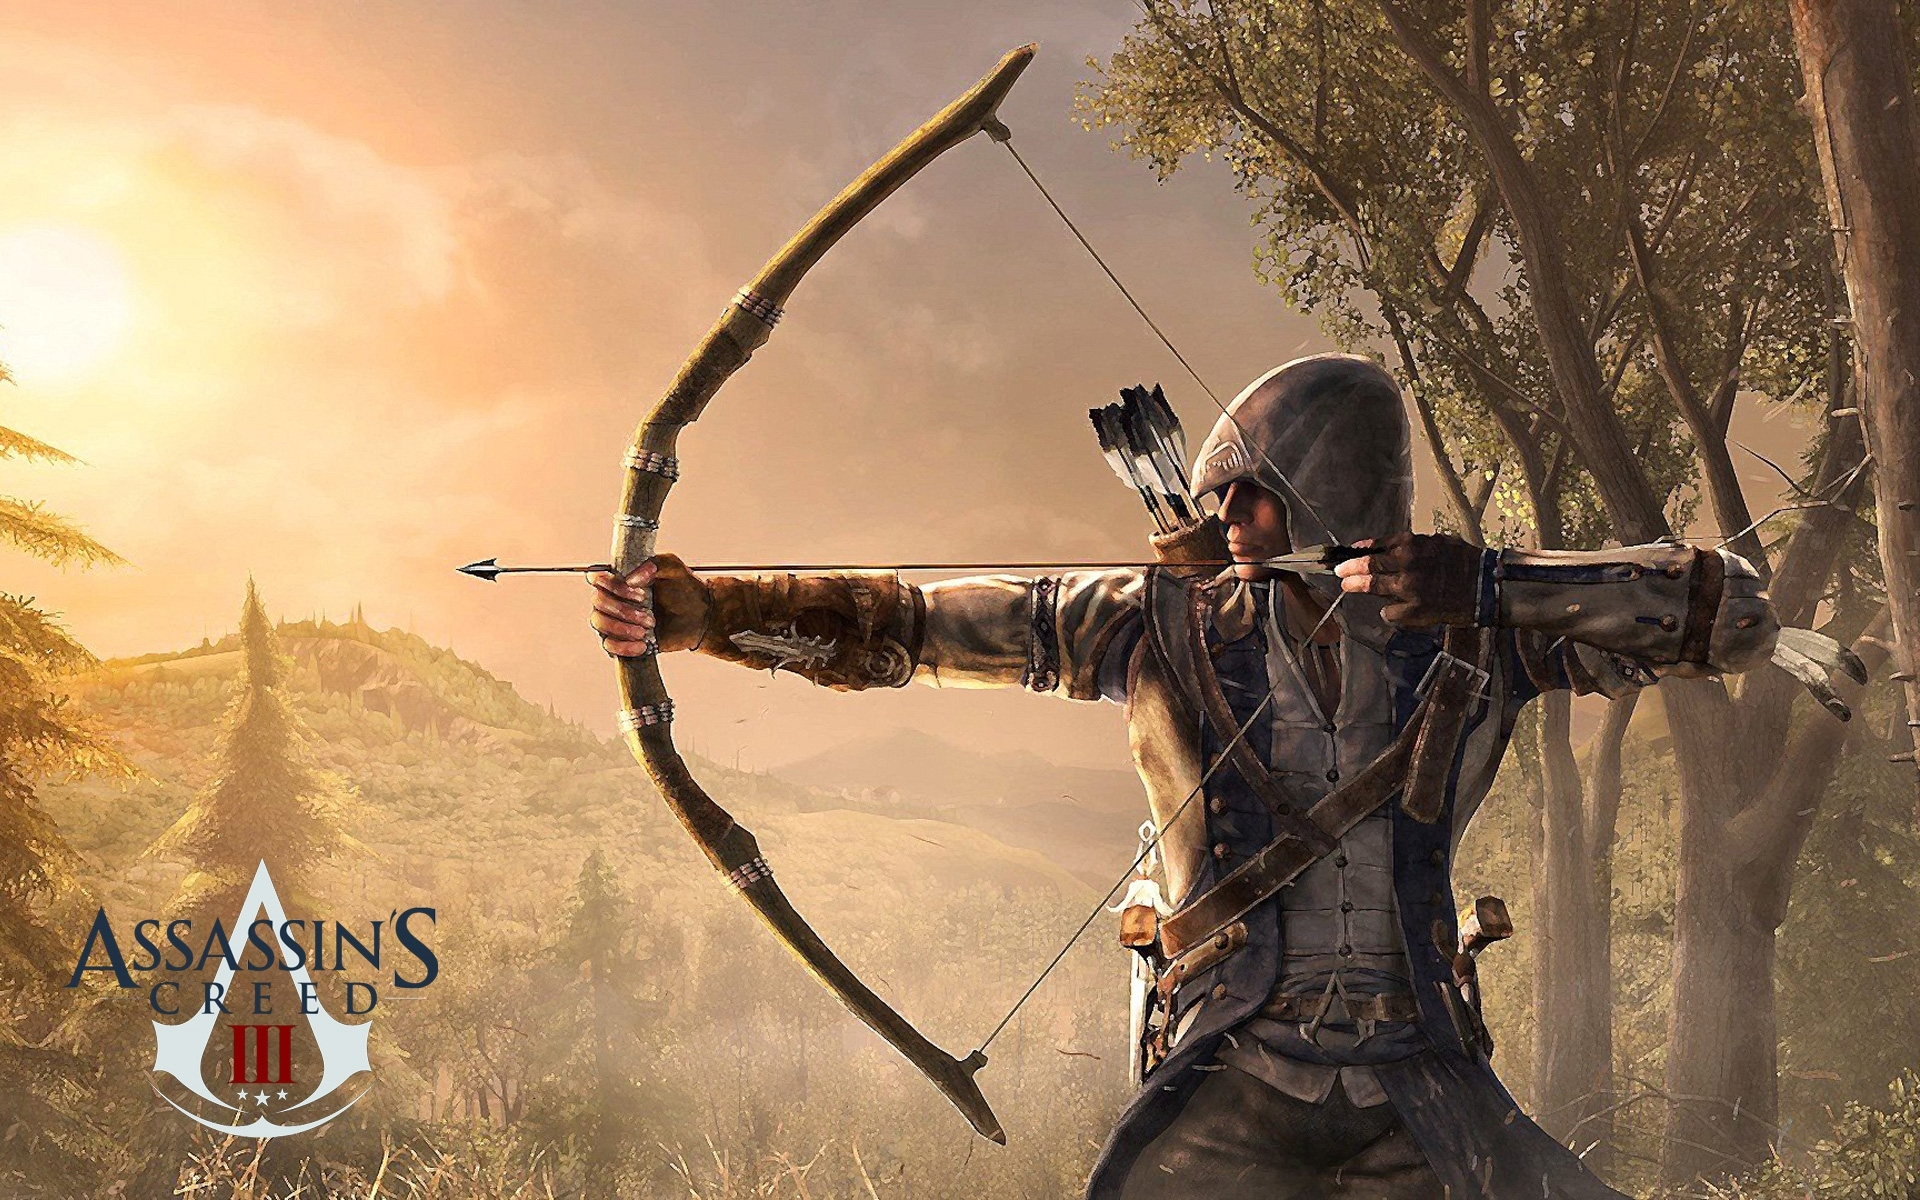 wallpapers : assassin's creed iii - back to the geek !